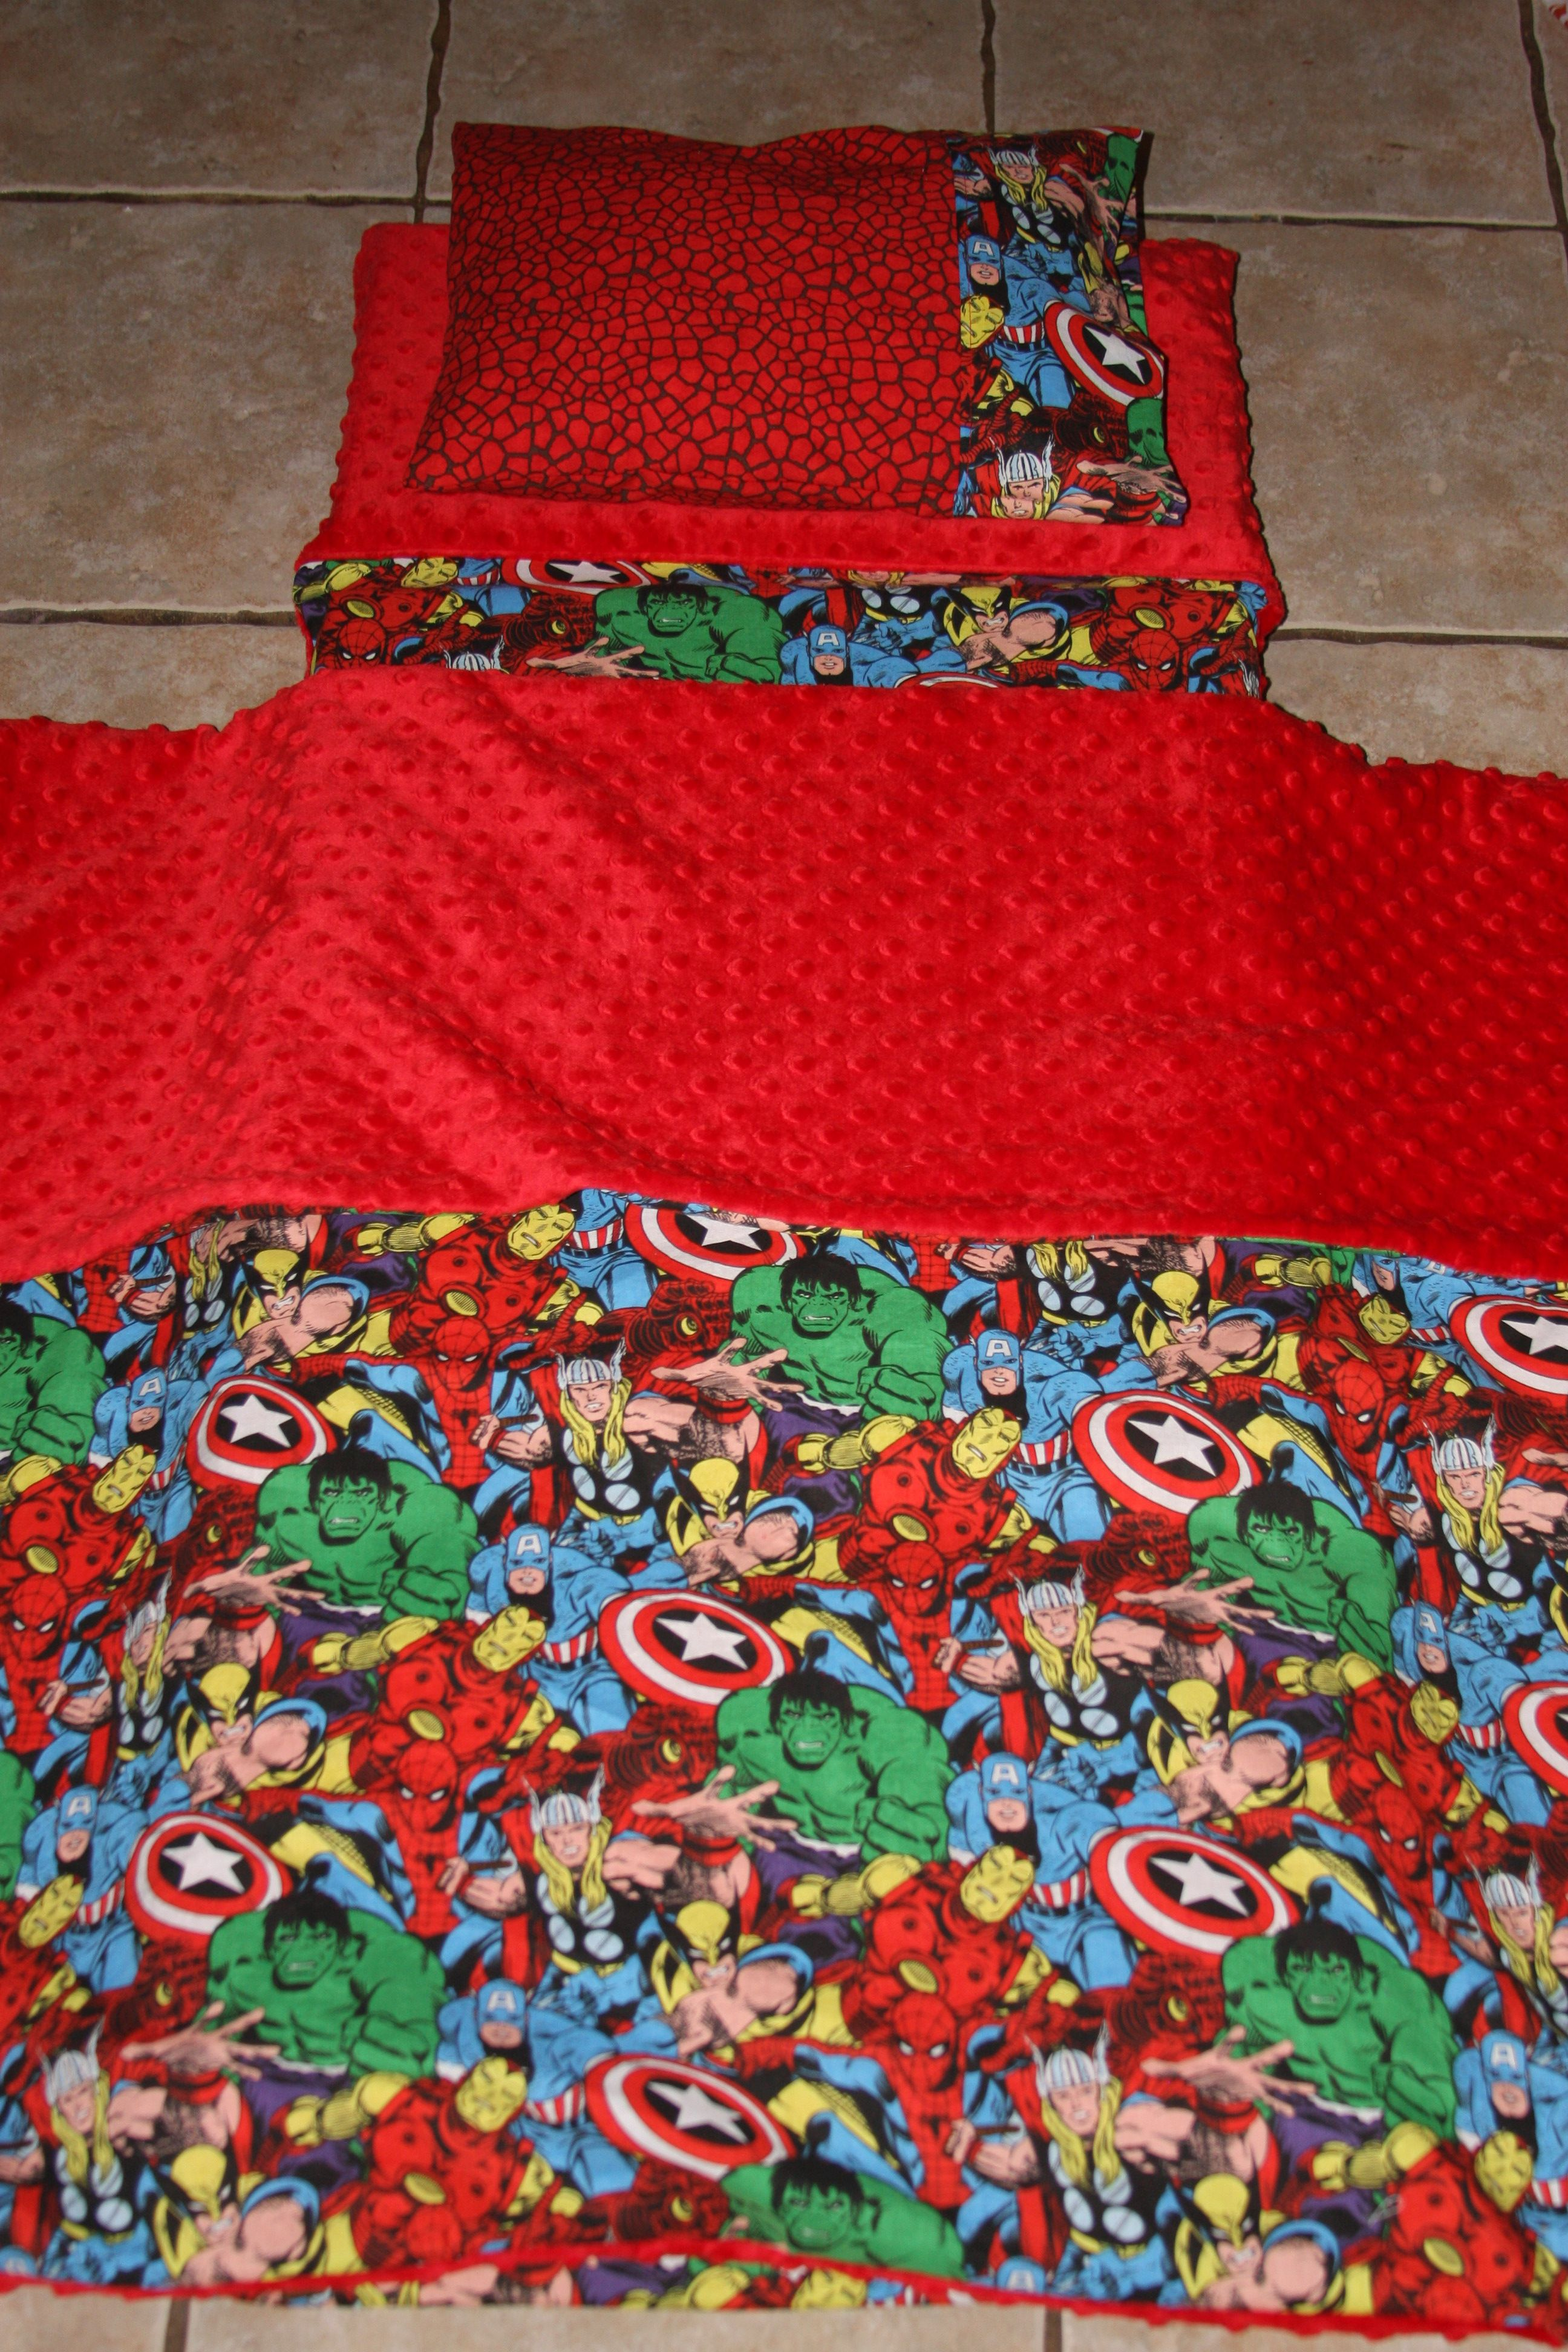 Super Hero nap mat cover, blanket, pillow and pillow case. Please